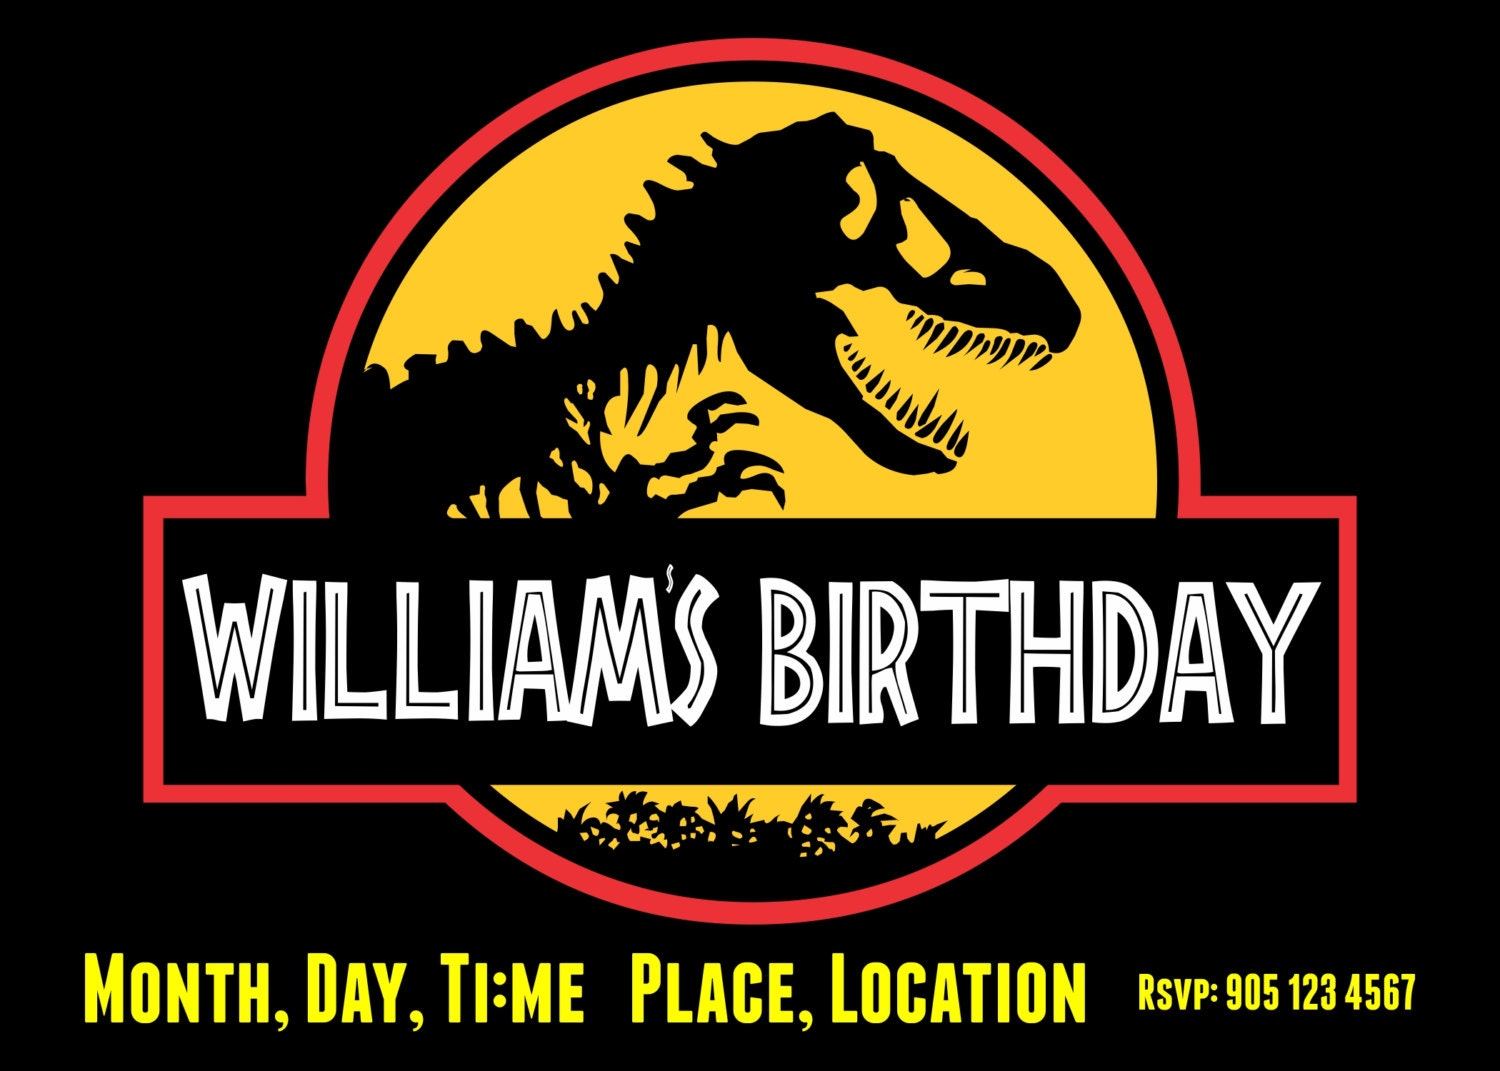 jurassic park birthday 2 dinosaurs birthday ideas jurassic park